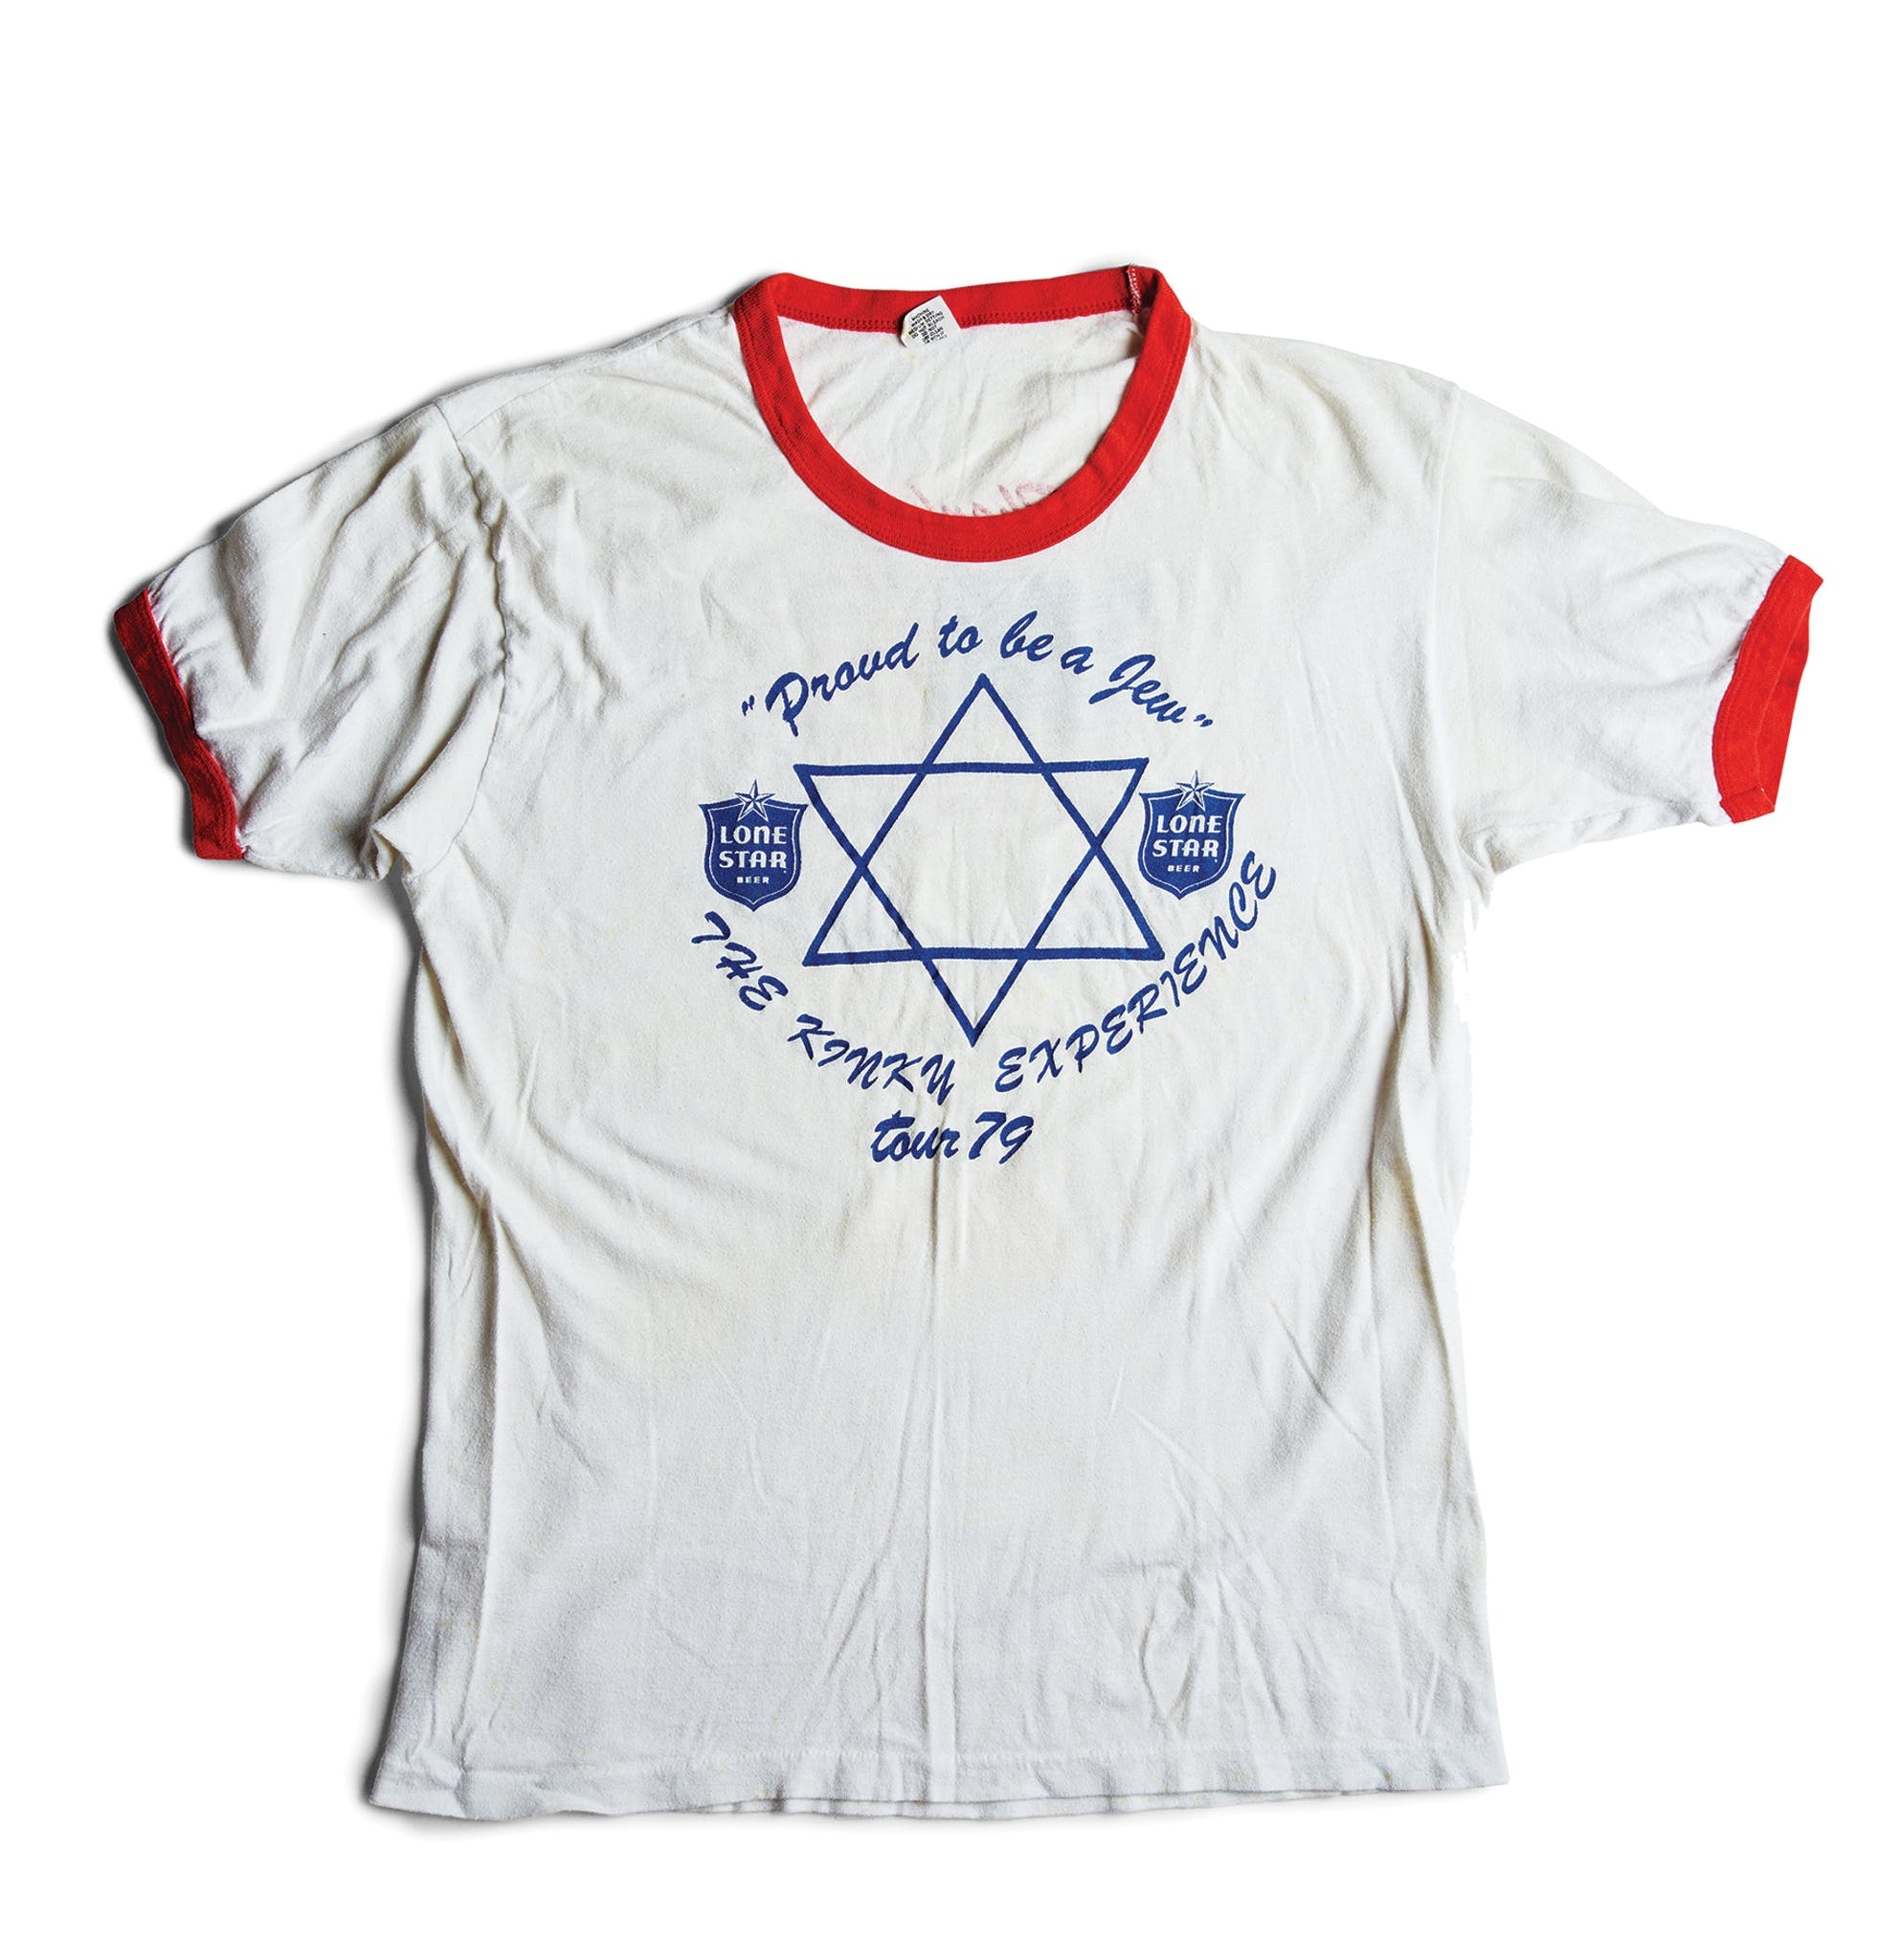 A t-shirt from one of Friedman's tours.